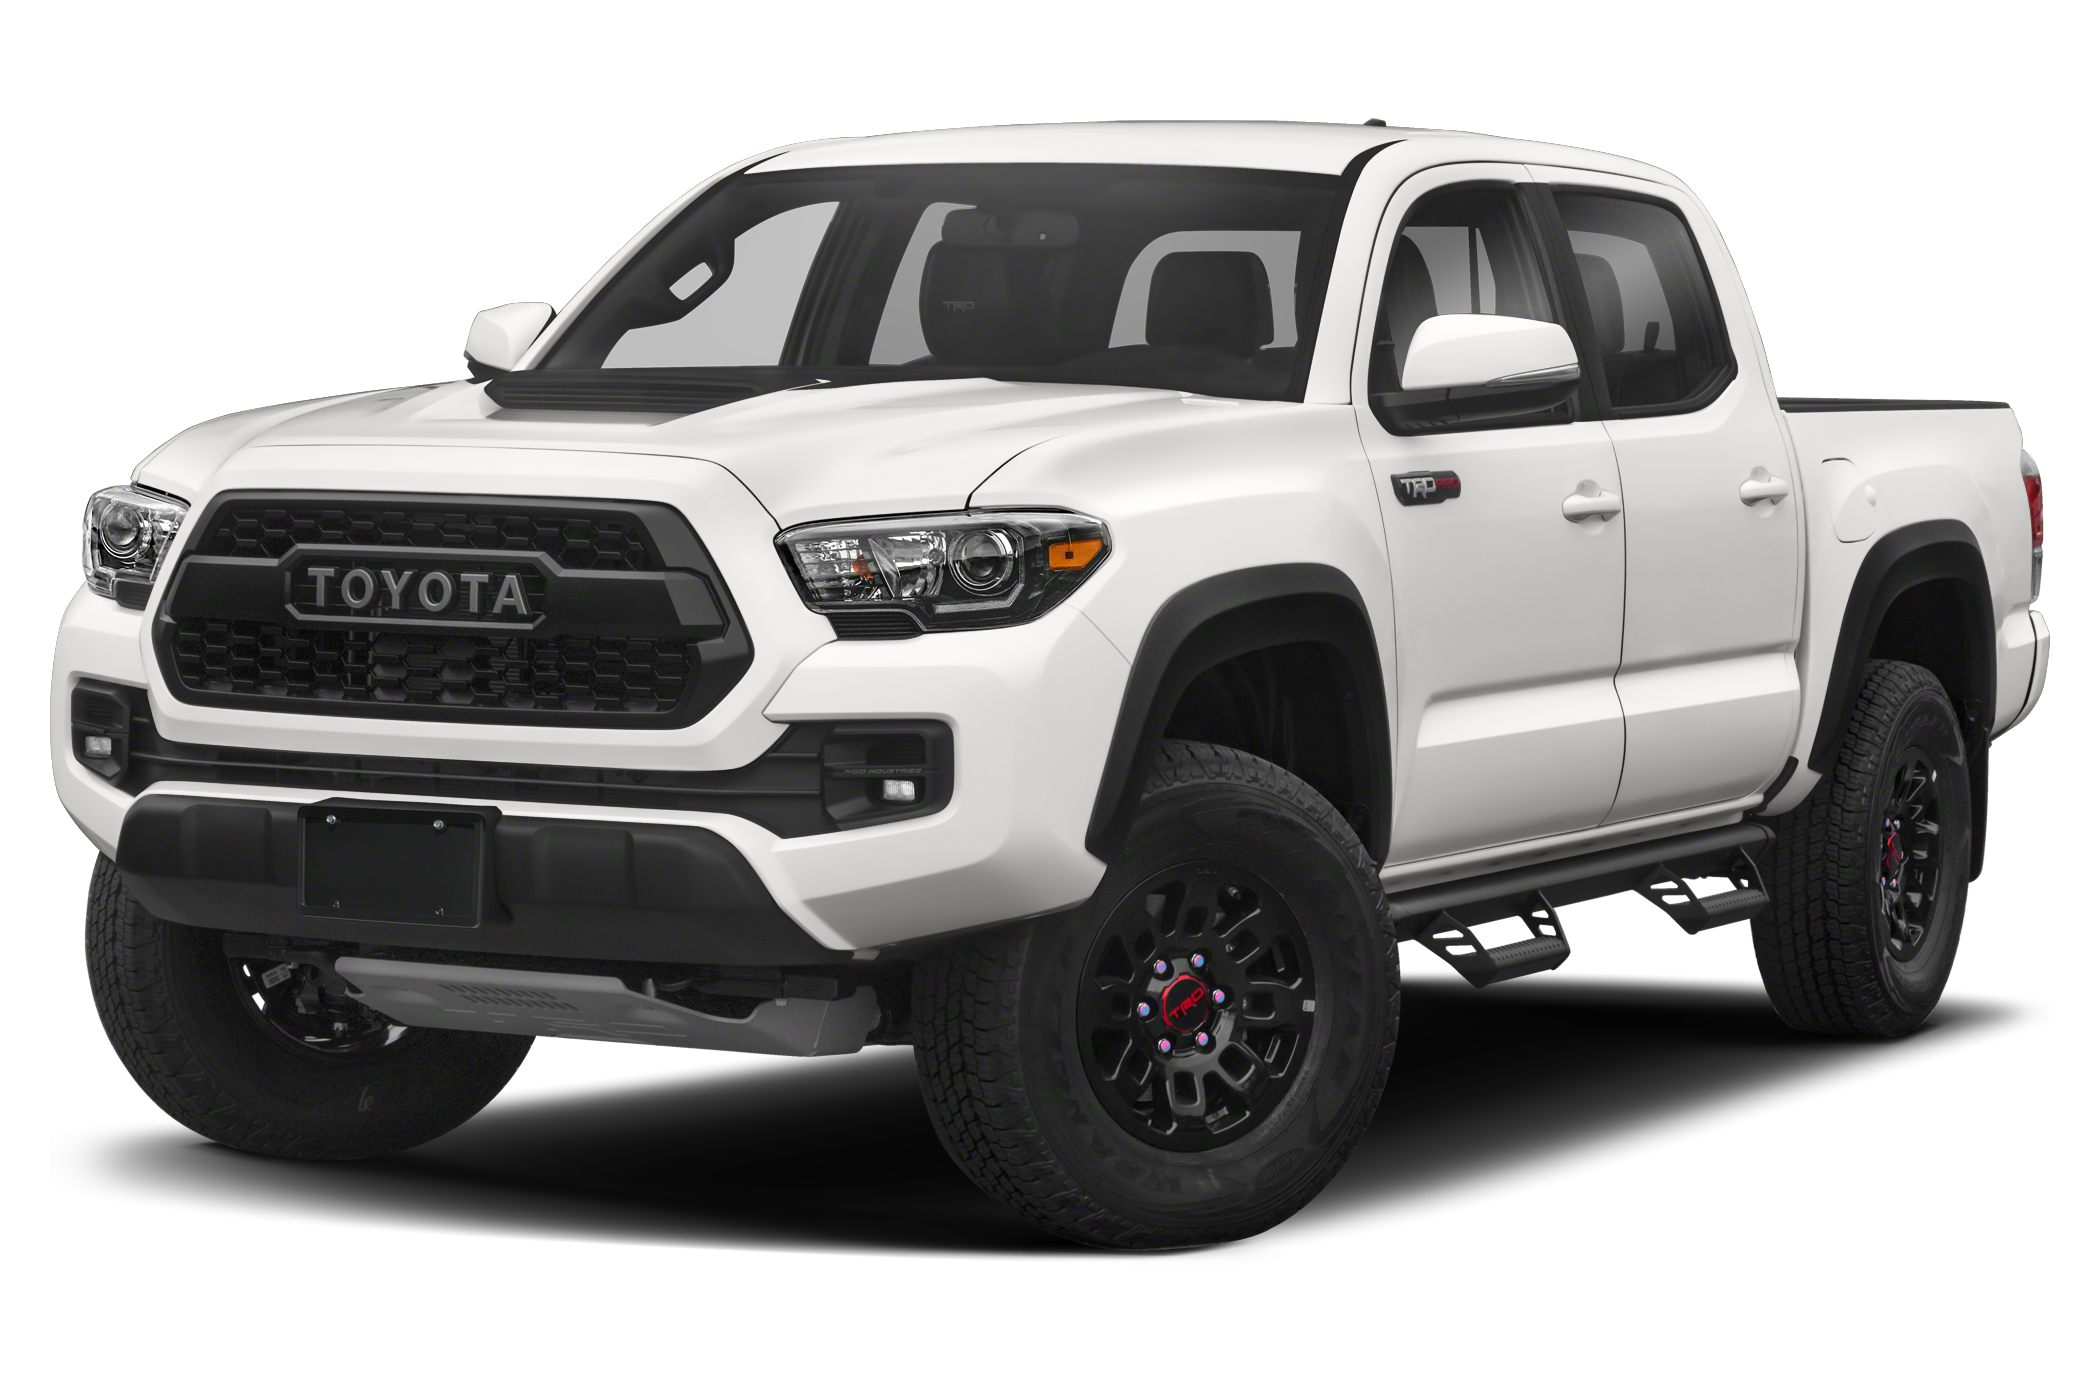 2017 Toyota Tacoma TRD Pro This 2017 Toyota Tacoma 4dr TRD Pro Double Cab 5 Bed V6 4x4 Automatic